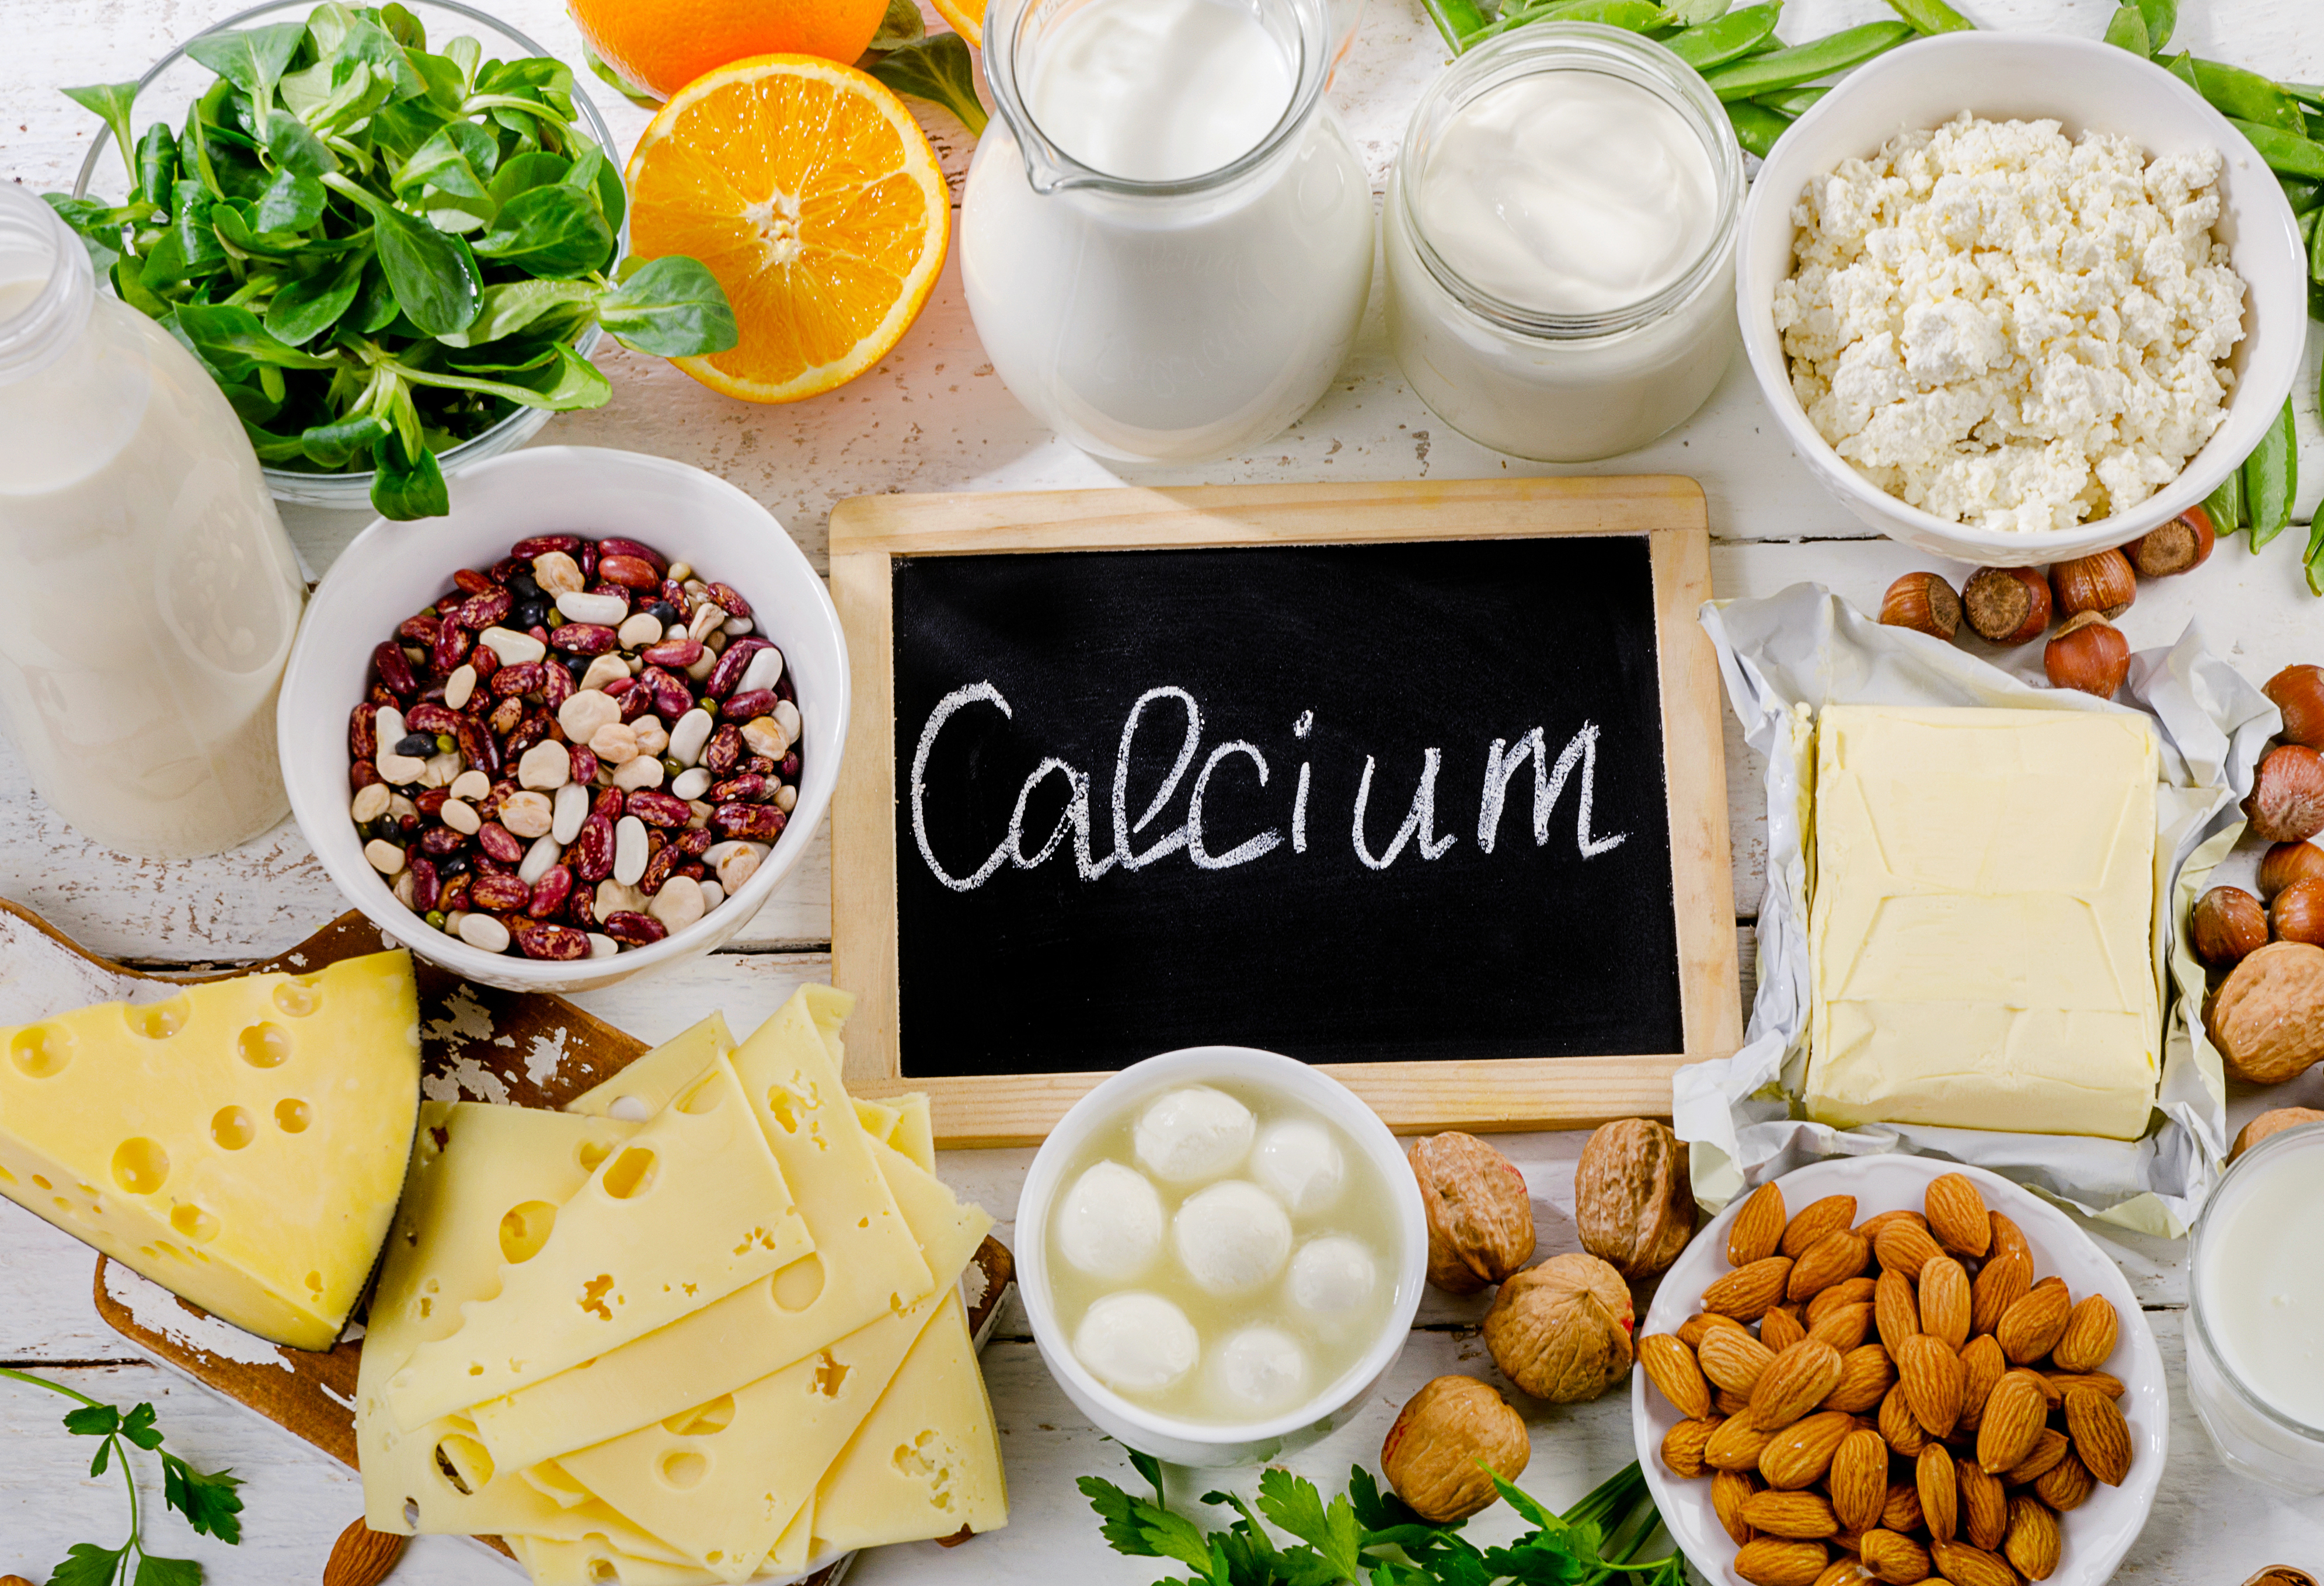 Calcium is found in foods like dairy, nuts and dark, leafy greens.